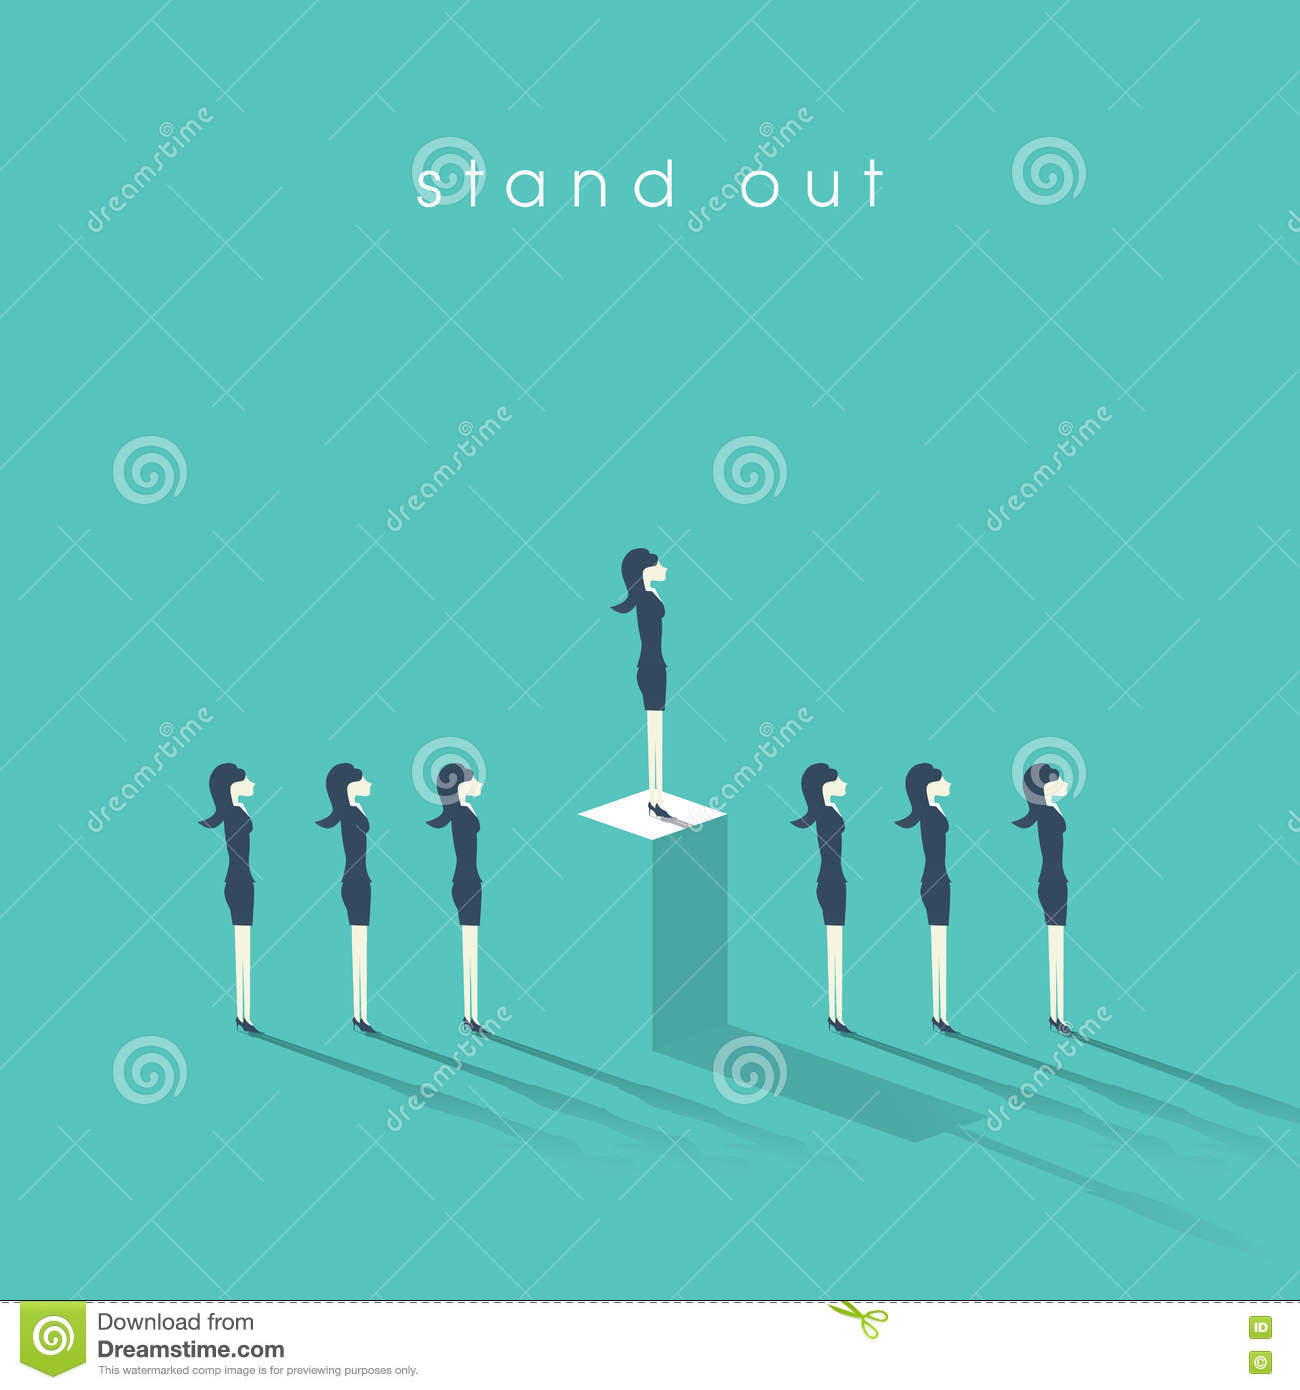 inequality concept vector illustration man versus w in business w standing out from the crowd businessw and concept of equality or inequality in